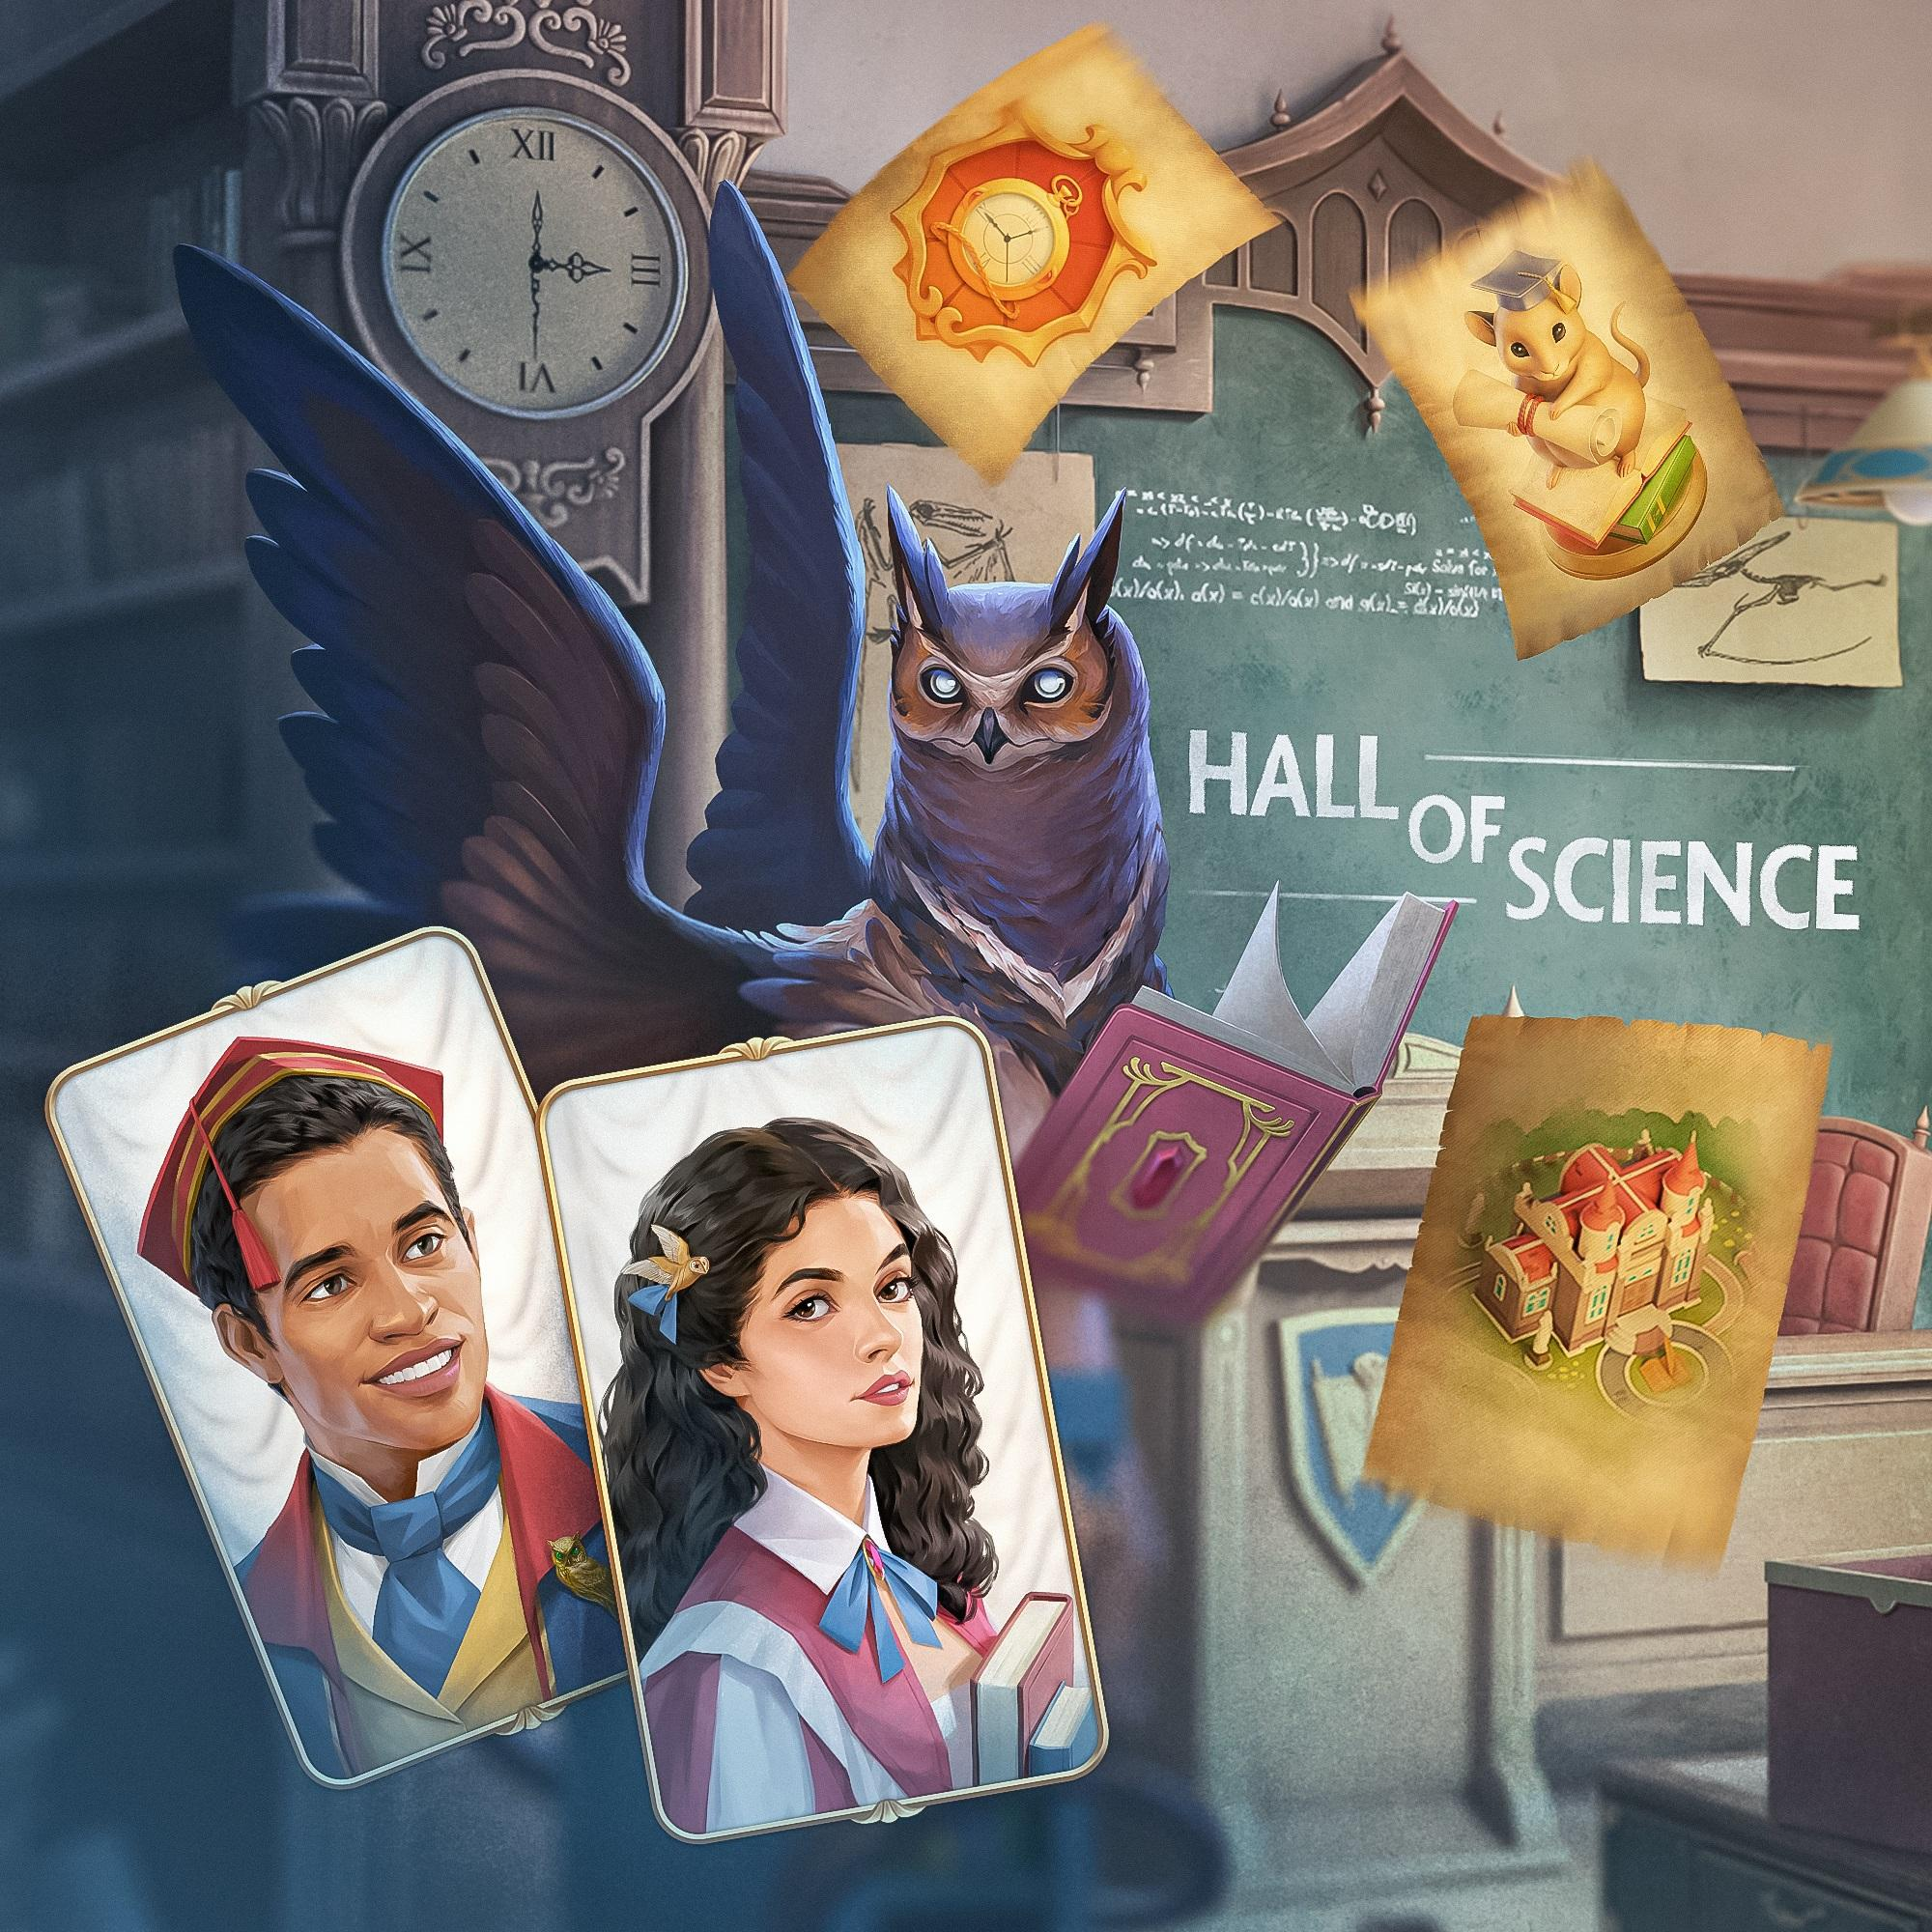 Ravenhill: Hidden Mystery. Update 2.22.0: Hall of Science